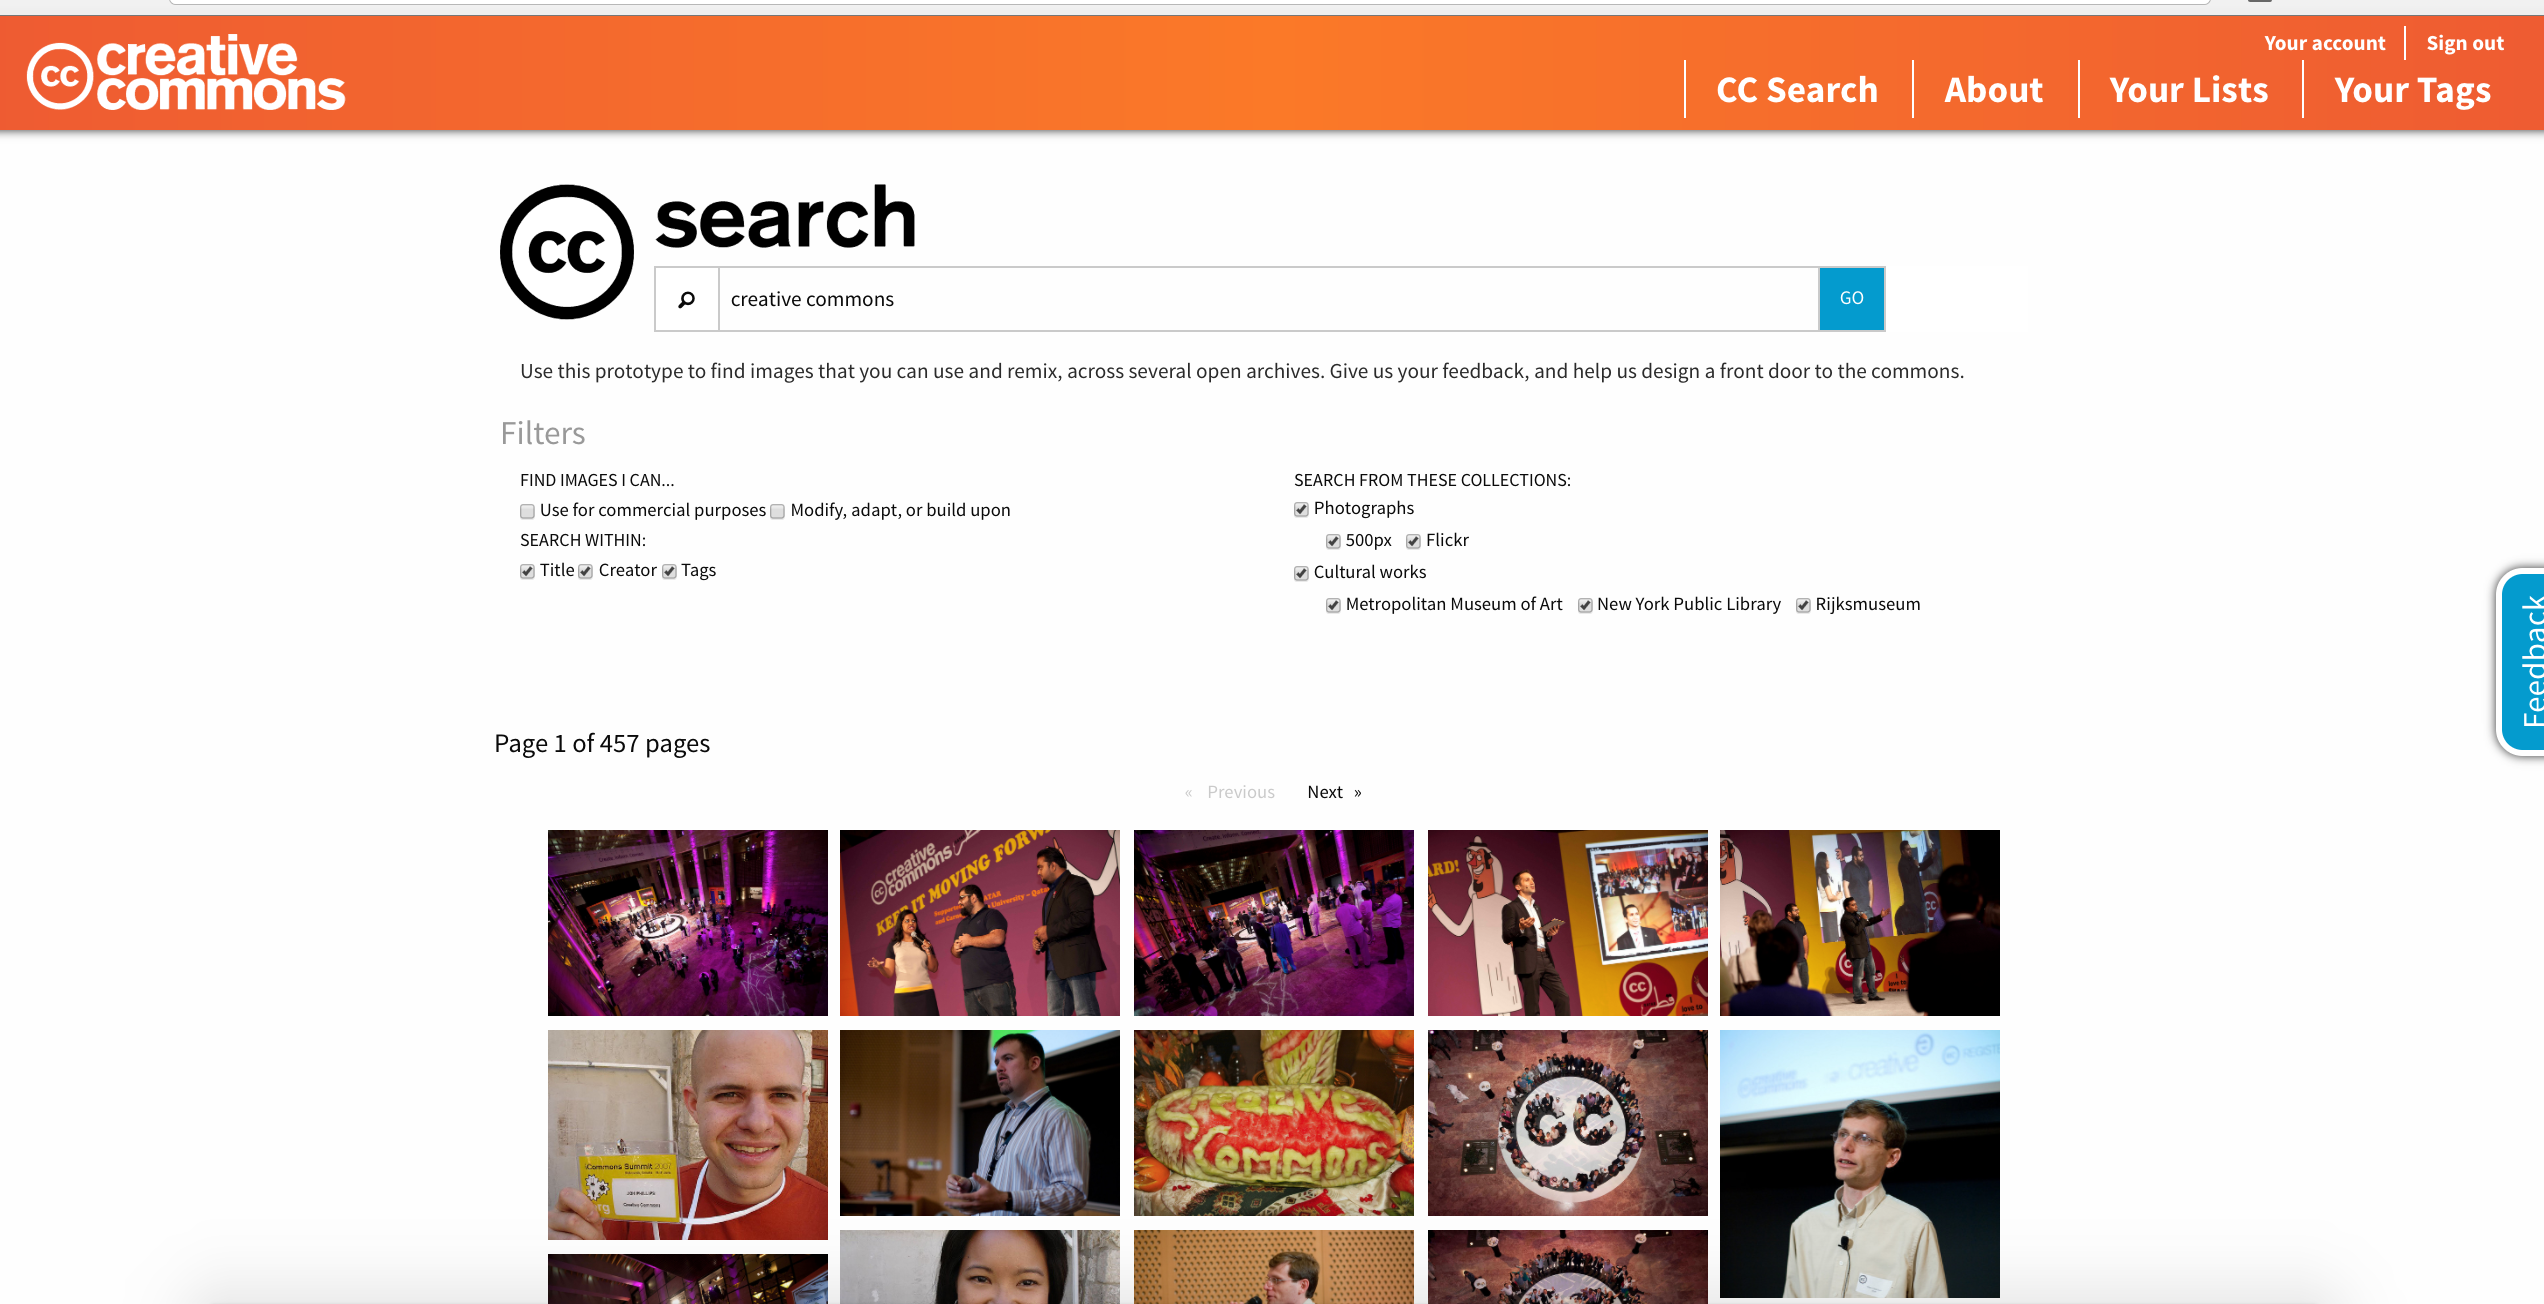 Announcing The New CC Search, Now In Beta